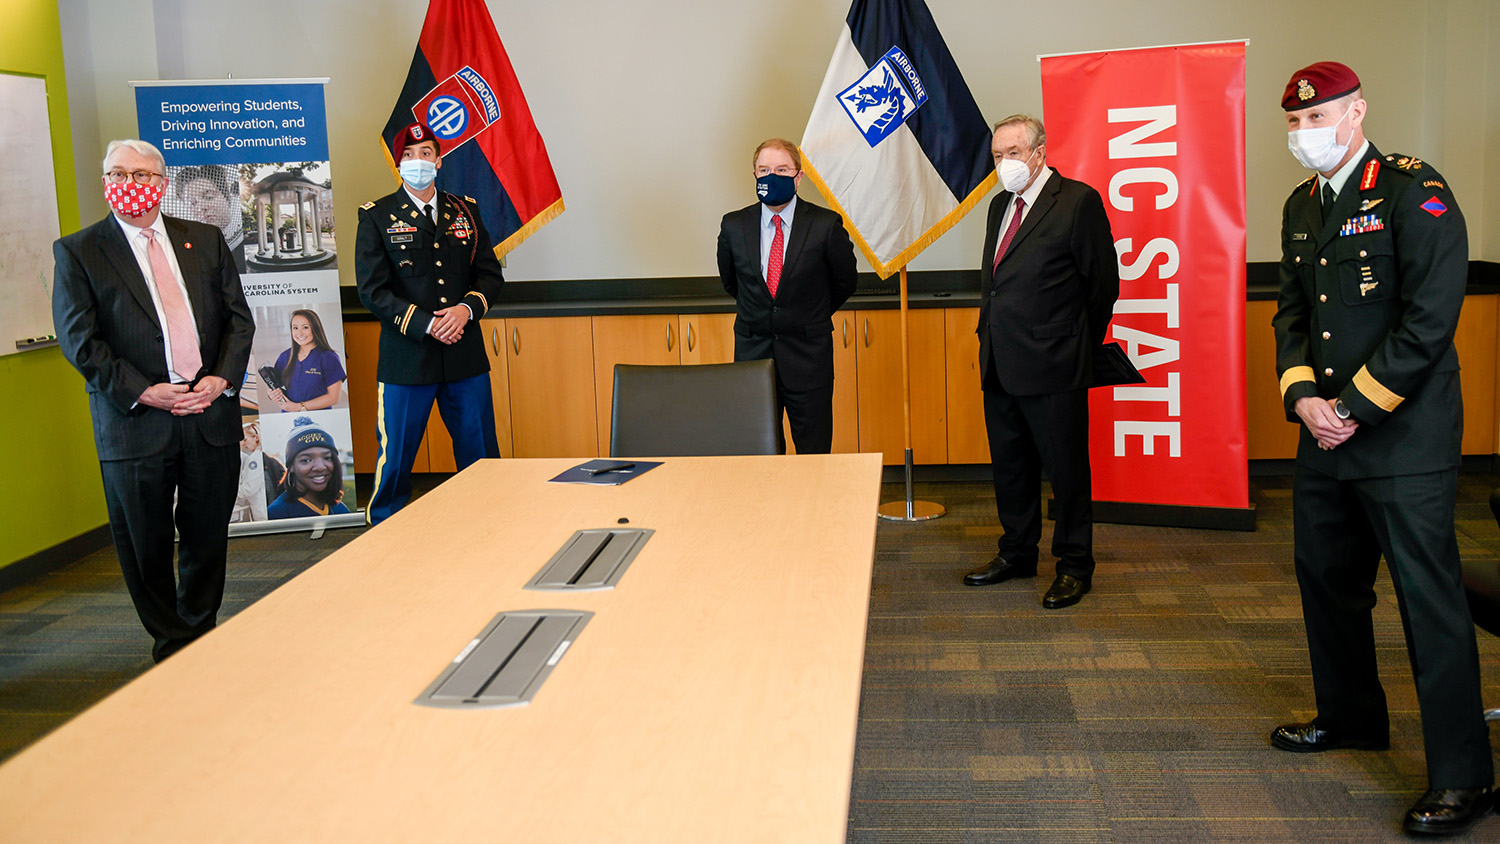 Brig. Gen. Bob Ritchie, UNC System President Peter Hans, NC State University Chancellor Randy Woodson, Vice Chancellor Mladen Vouk and Capt. Dave Giralt attend a signing event to formalize an educational partnership agreement.